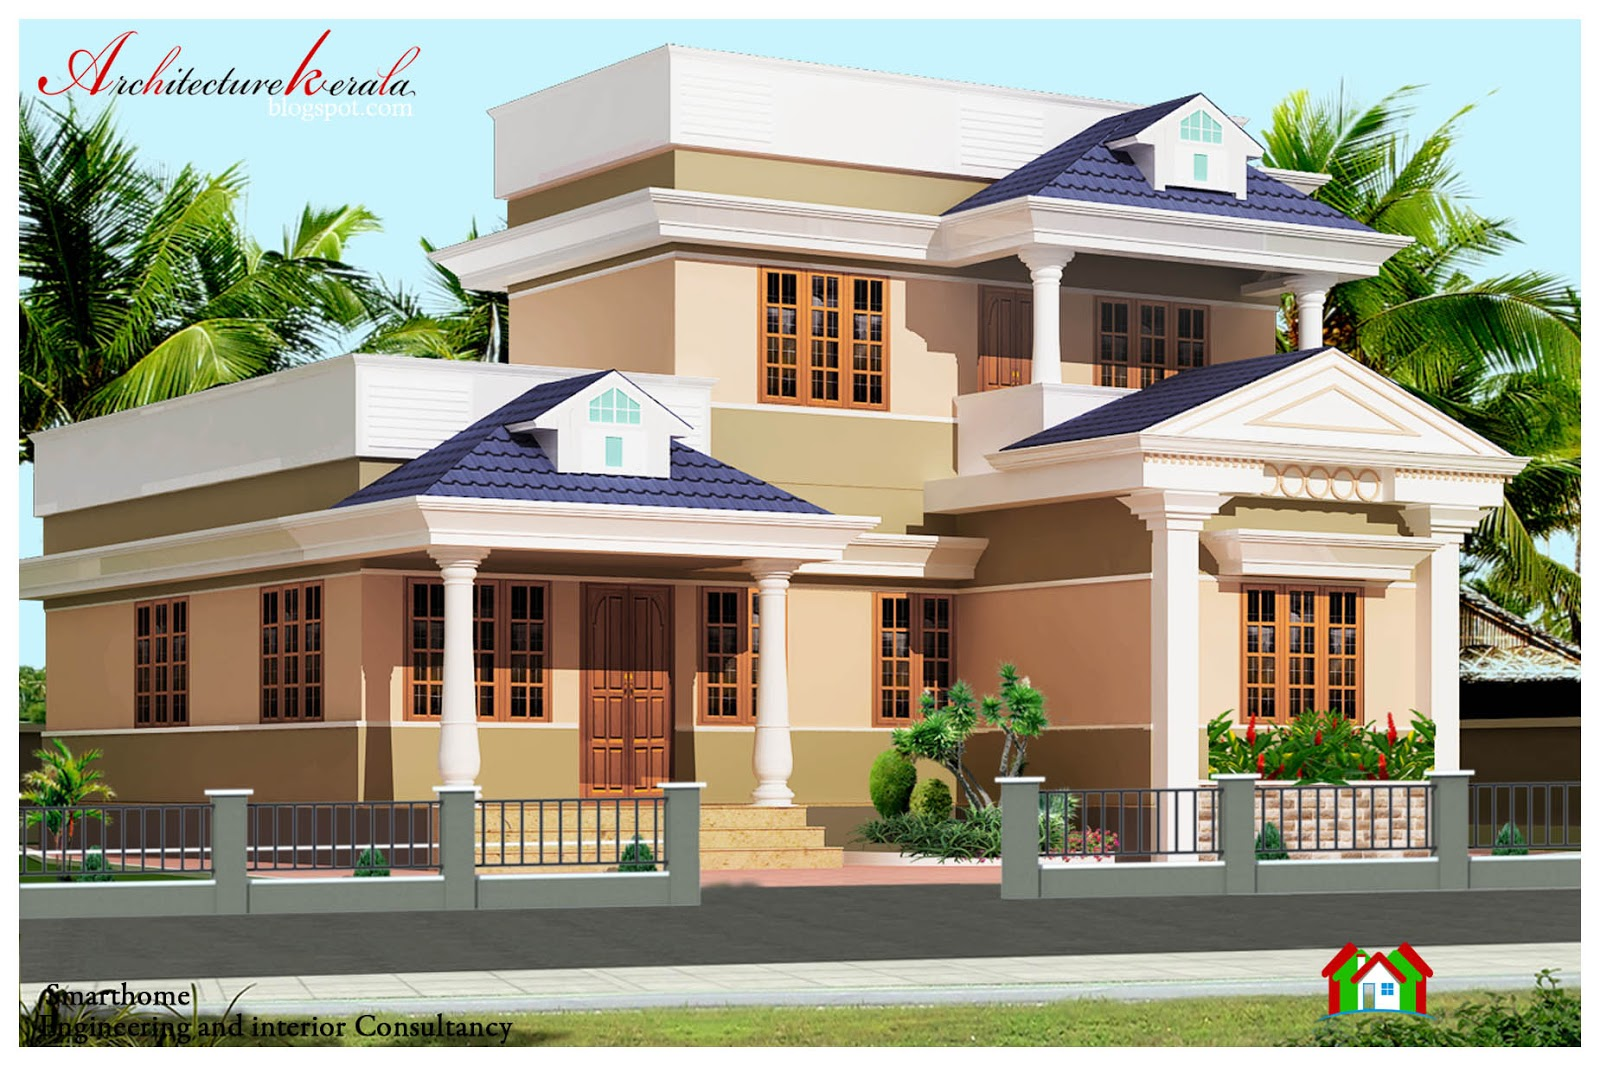 Architecture kerala 1000 sq ft kerala style house plan for 1000 square feet house plan kerala model